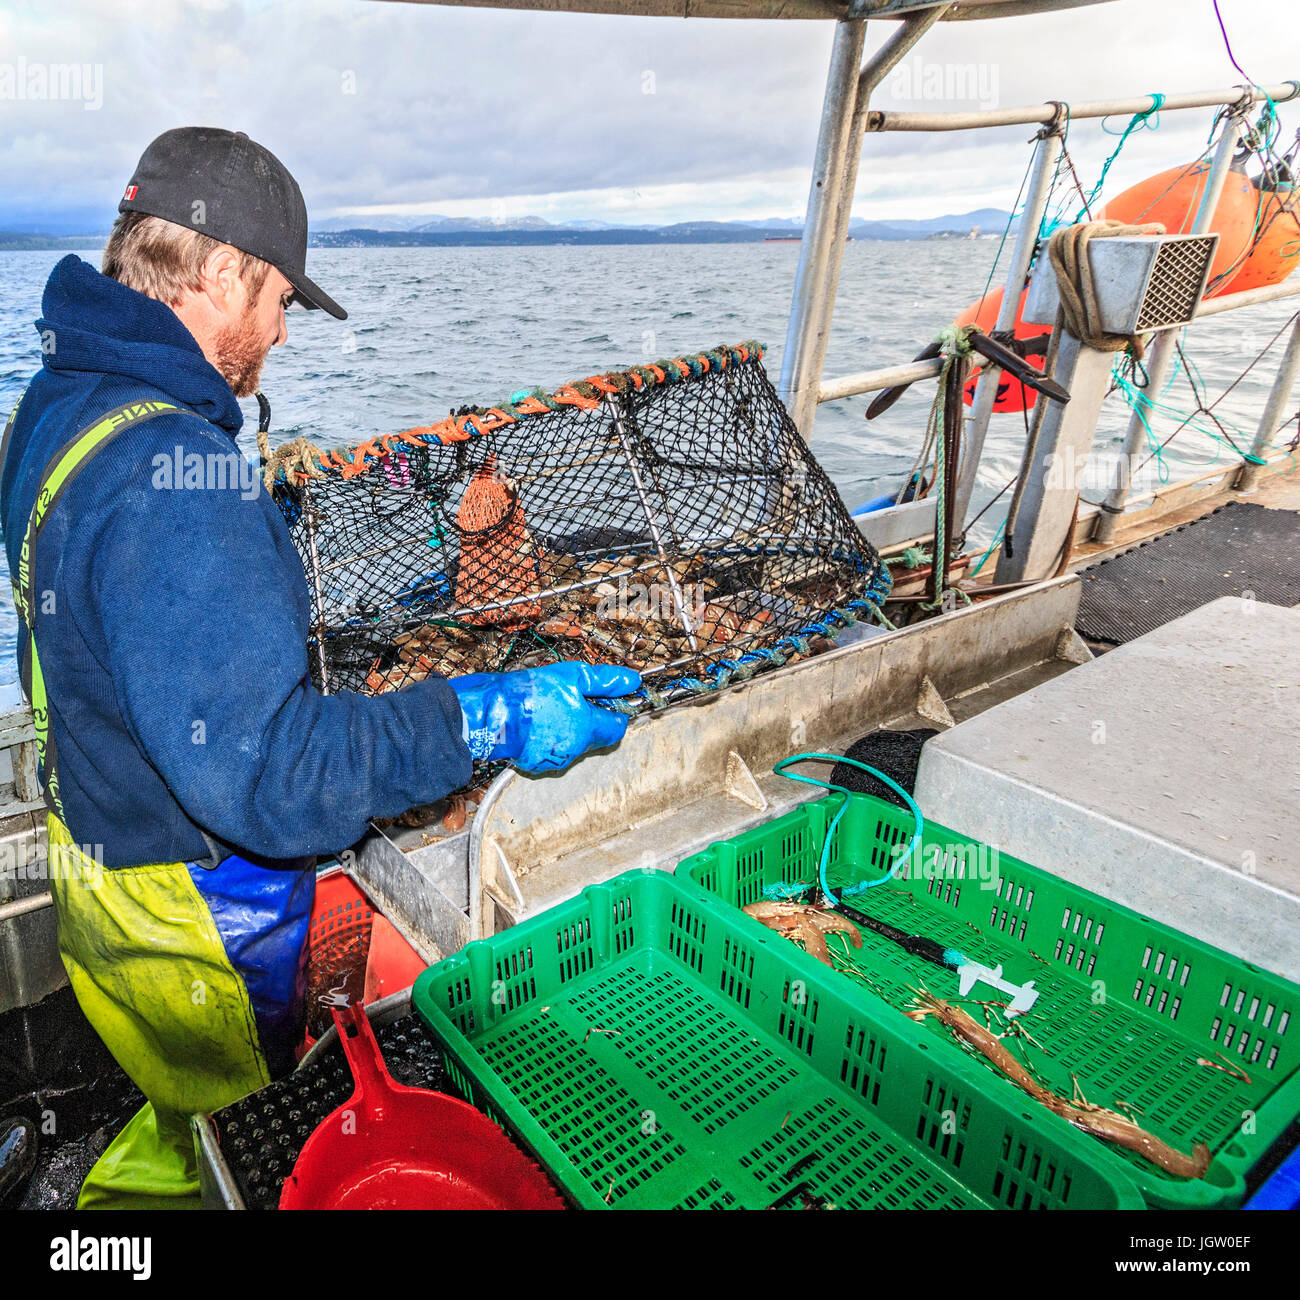 Commercial fishing boat Nordic Rand off Vancouver Island, BC, Canada, fishing for prawns (like shrimp but larger). - Stock Image